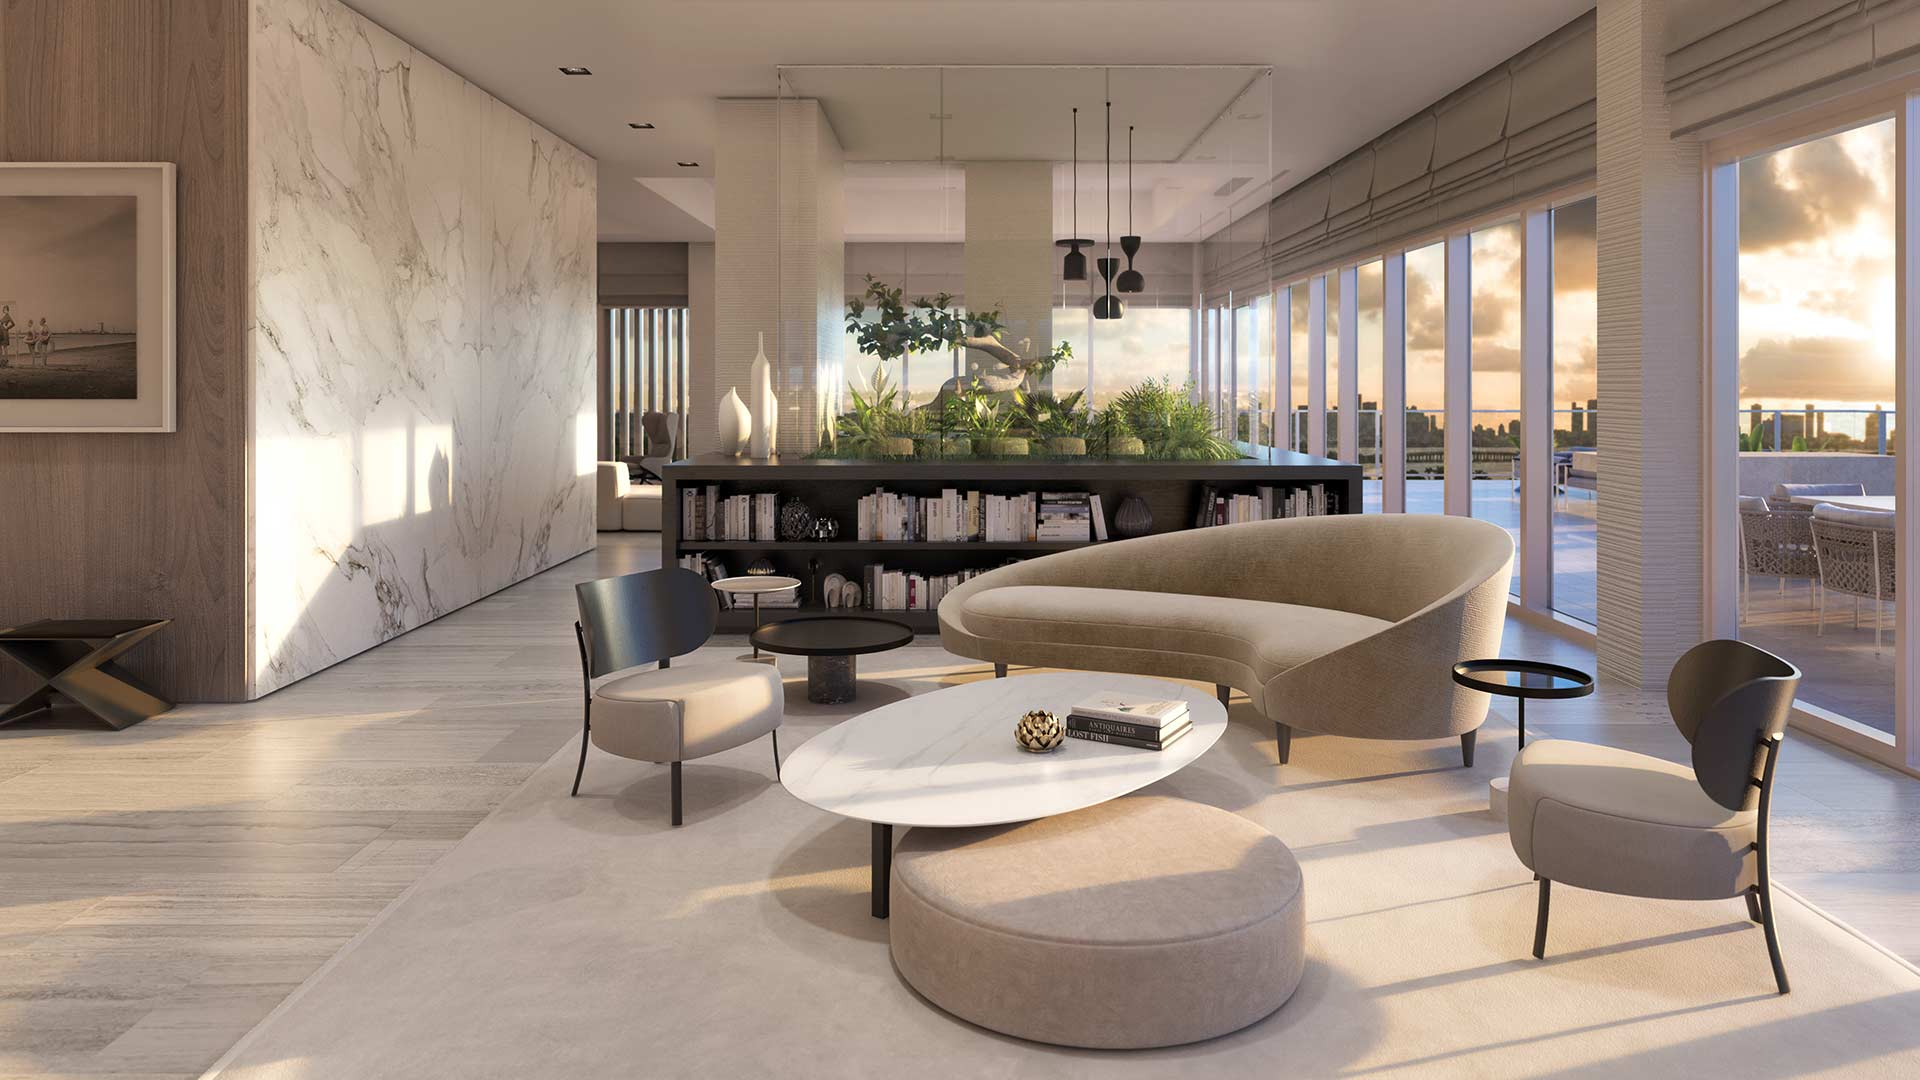 ritz-carlton-residences-miami-beach-ph5-interior